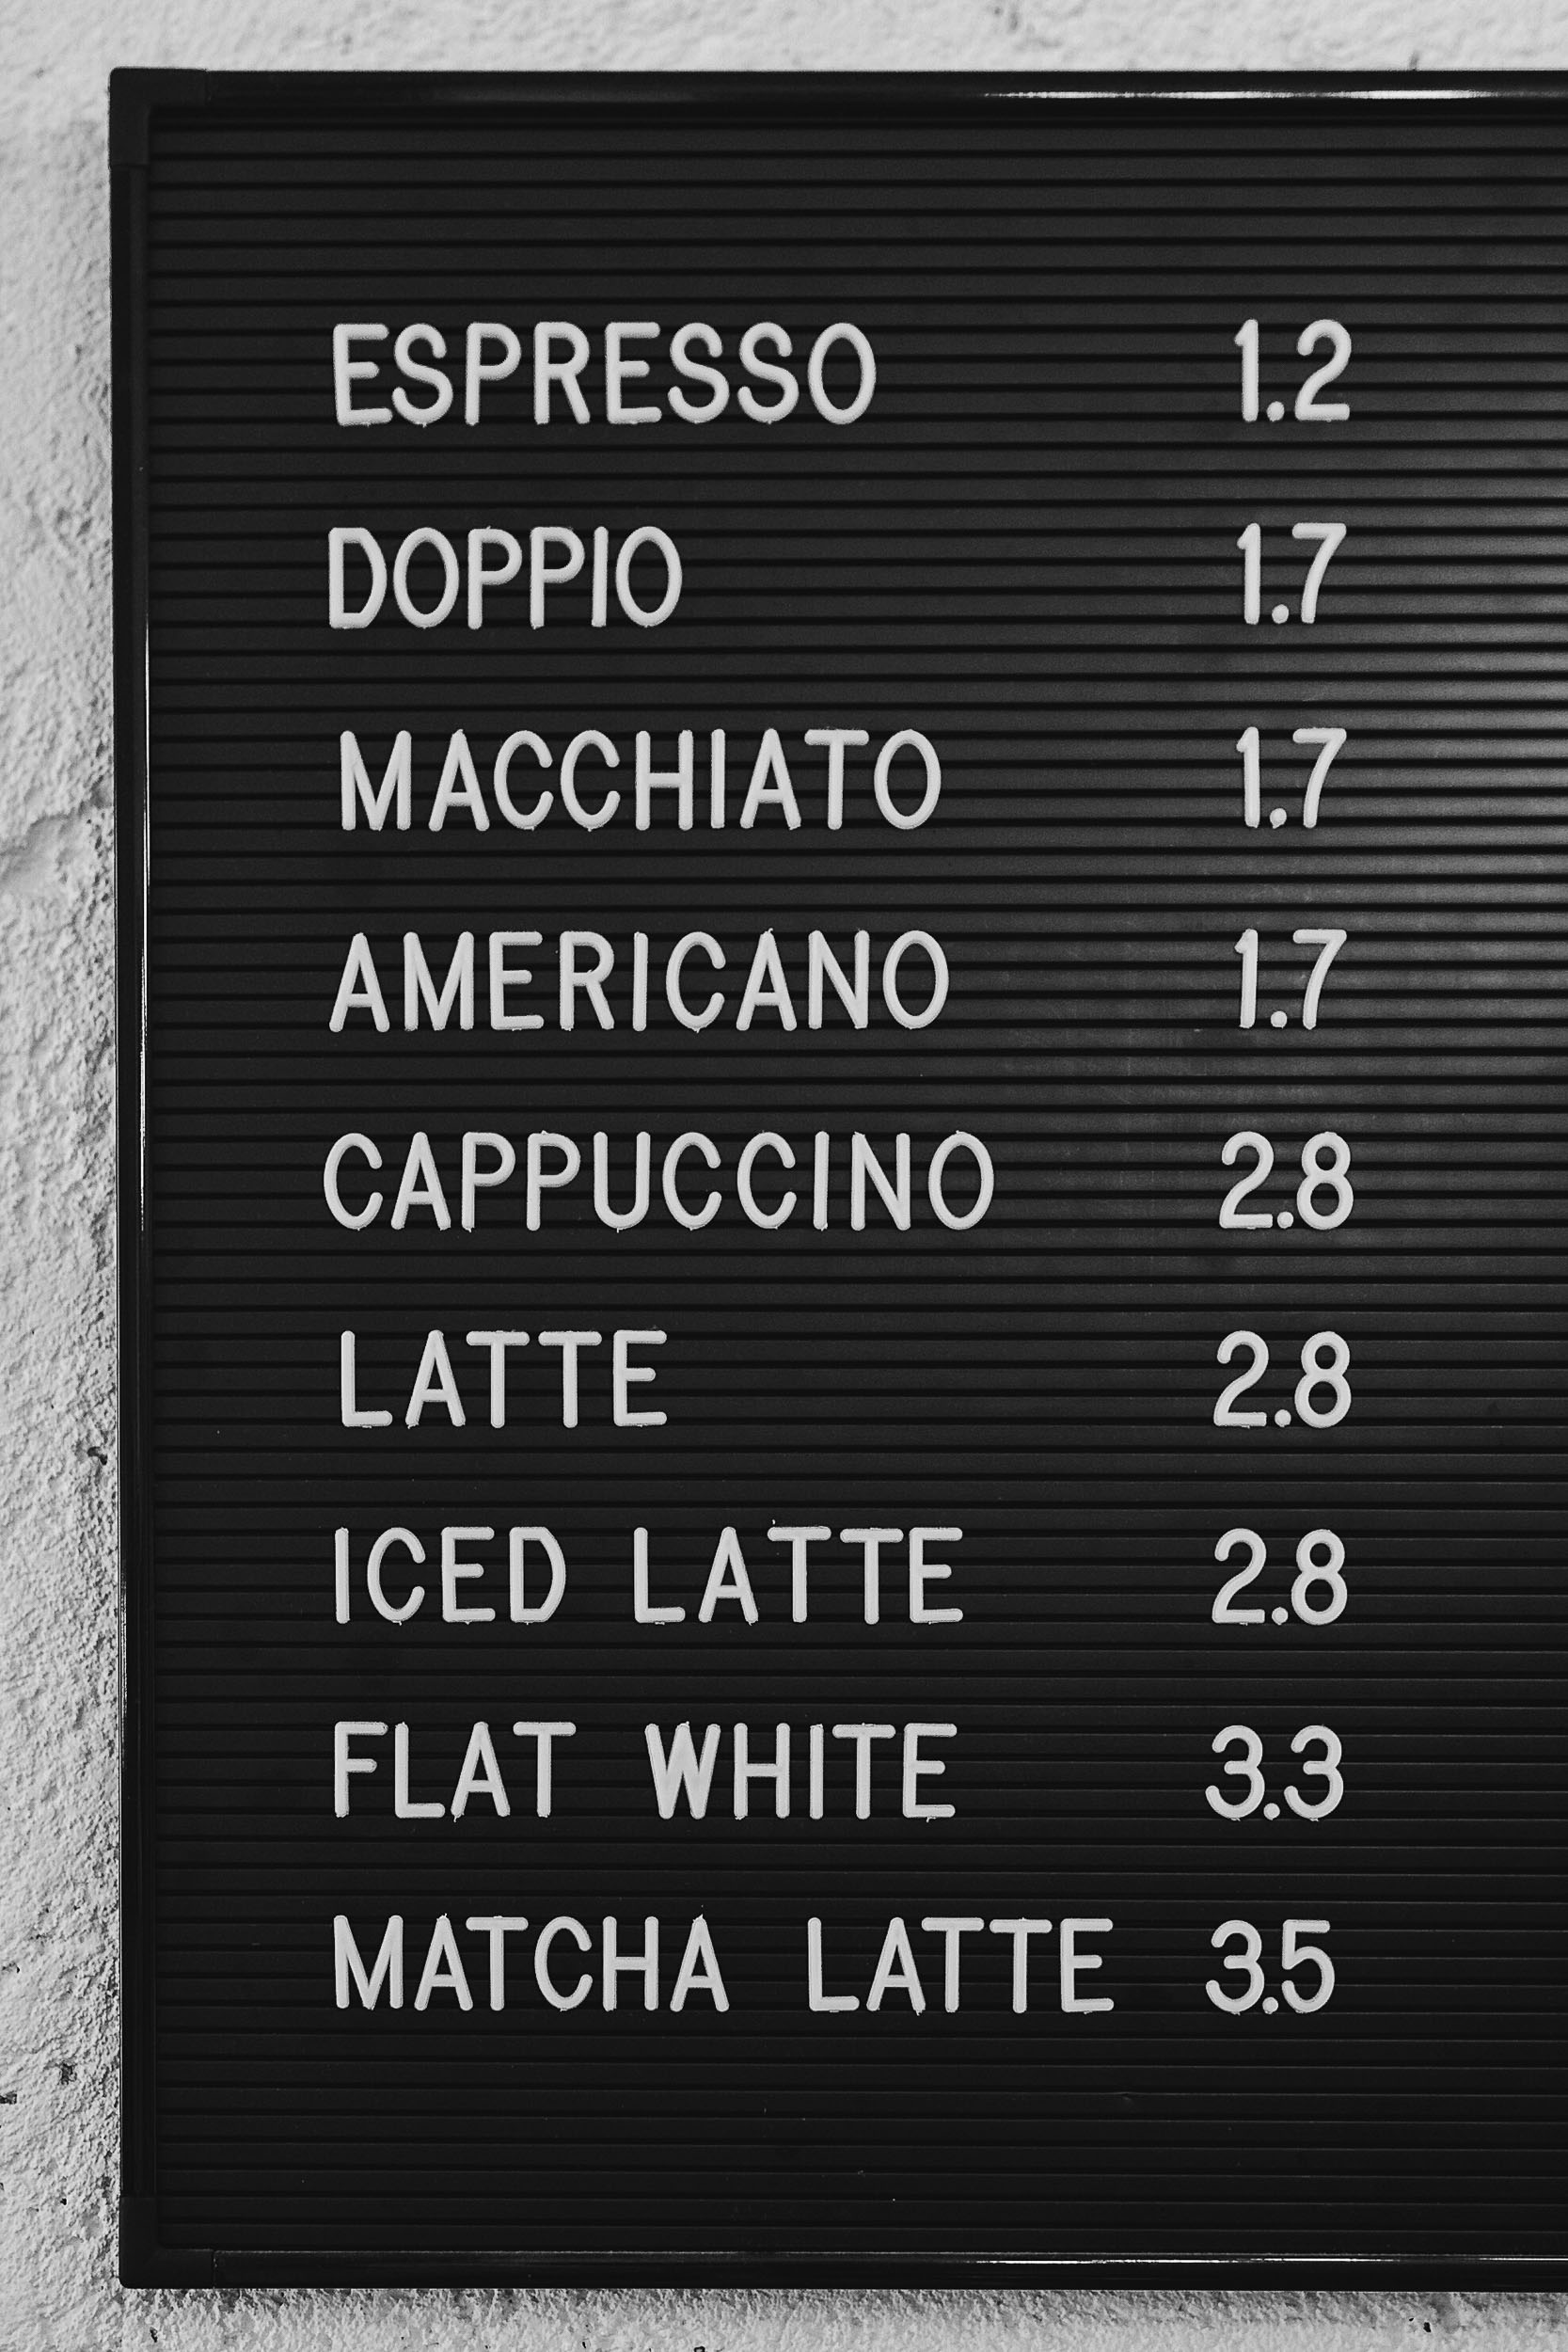 The coffee lineup at Hello, Kristof in Lisbon, Portugal